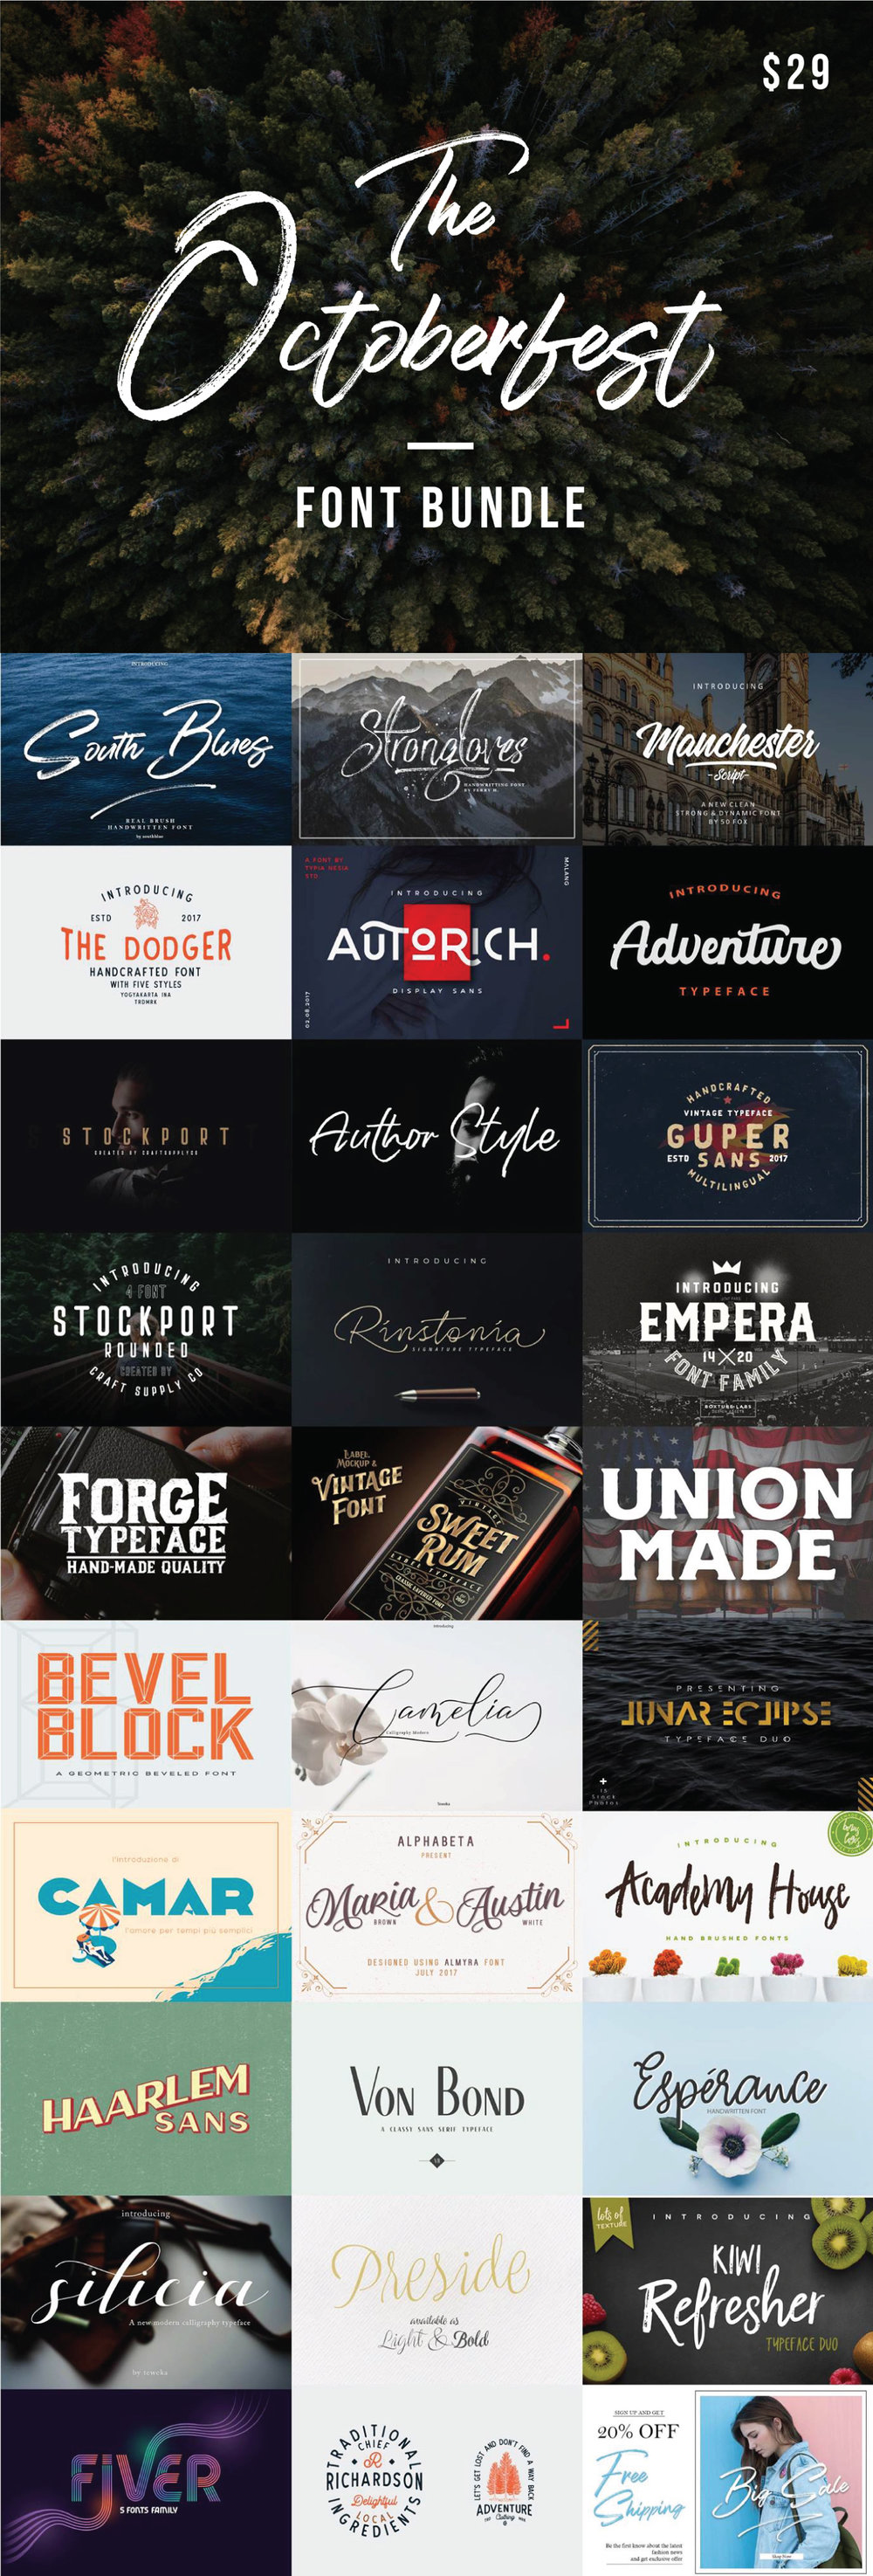 Octoberfest-font-bundle